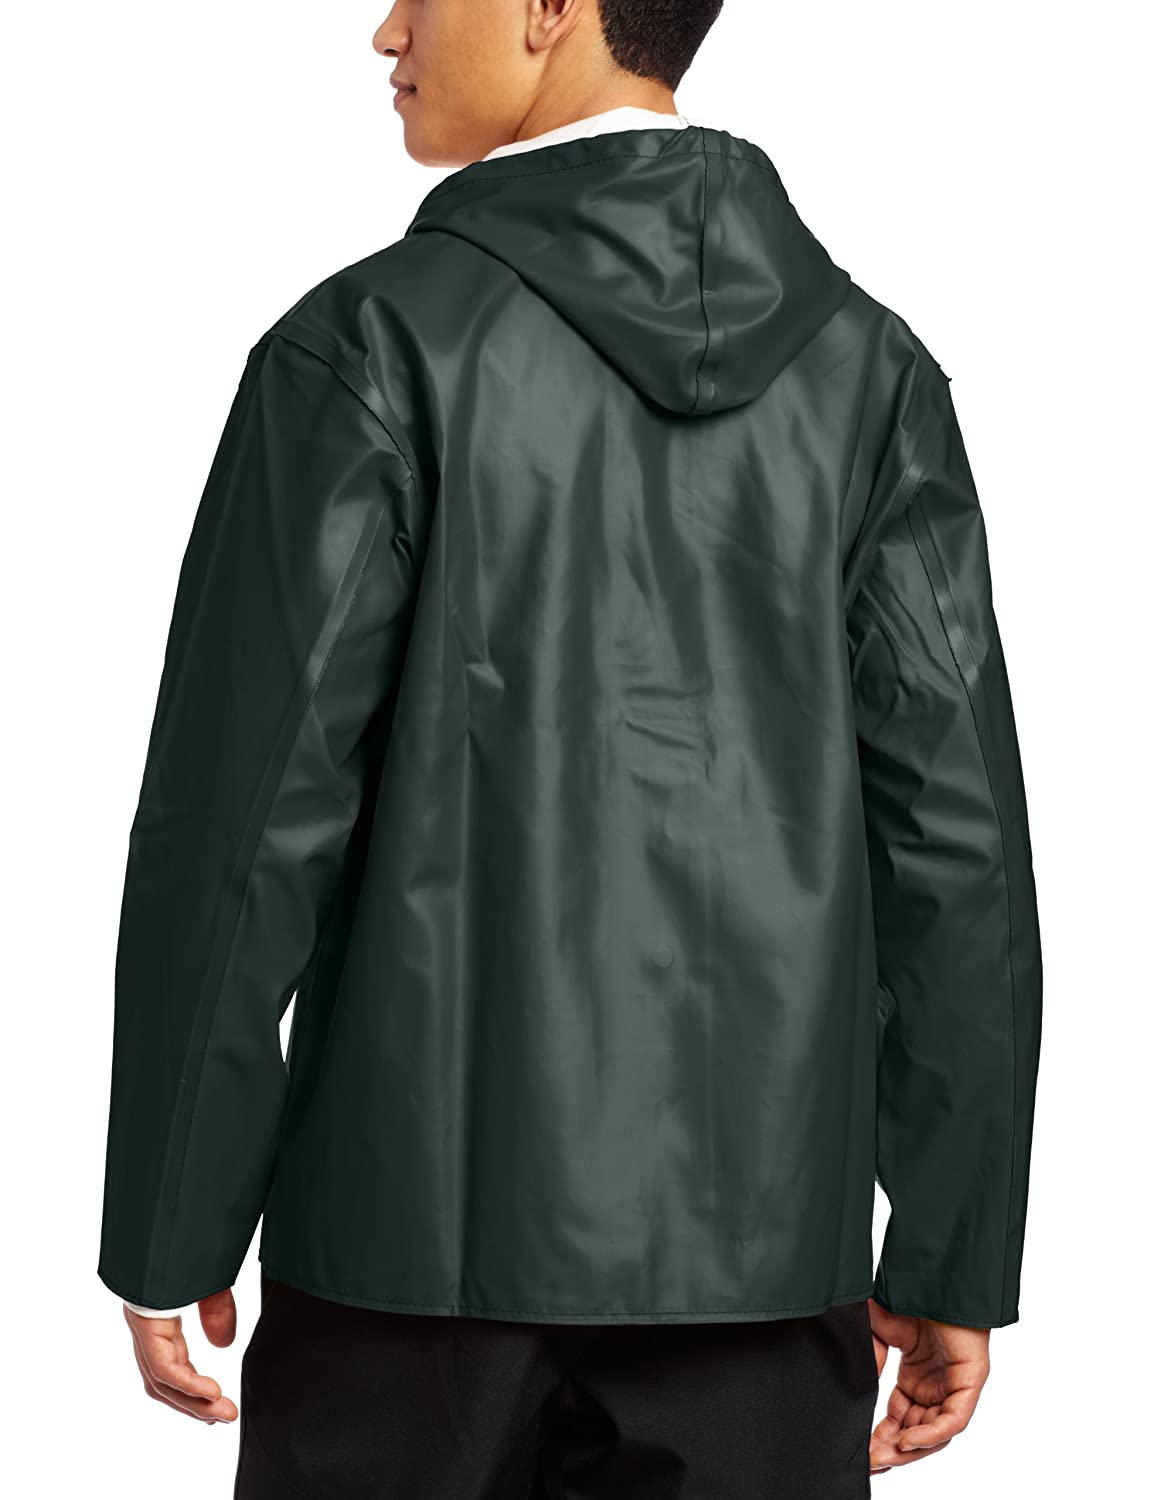 Amazon.com : Clipper Hooded Parka : Rain Jacket : Sports & Outdoors